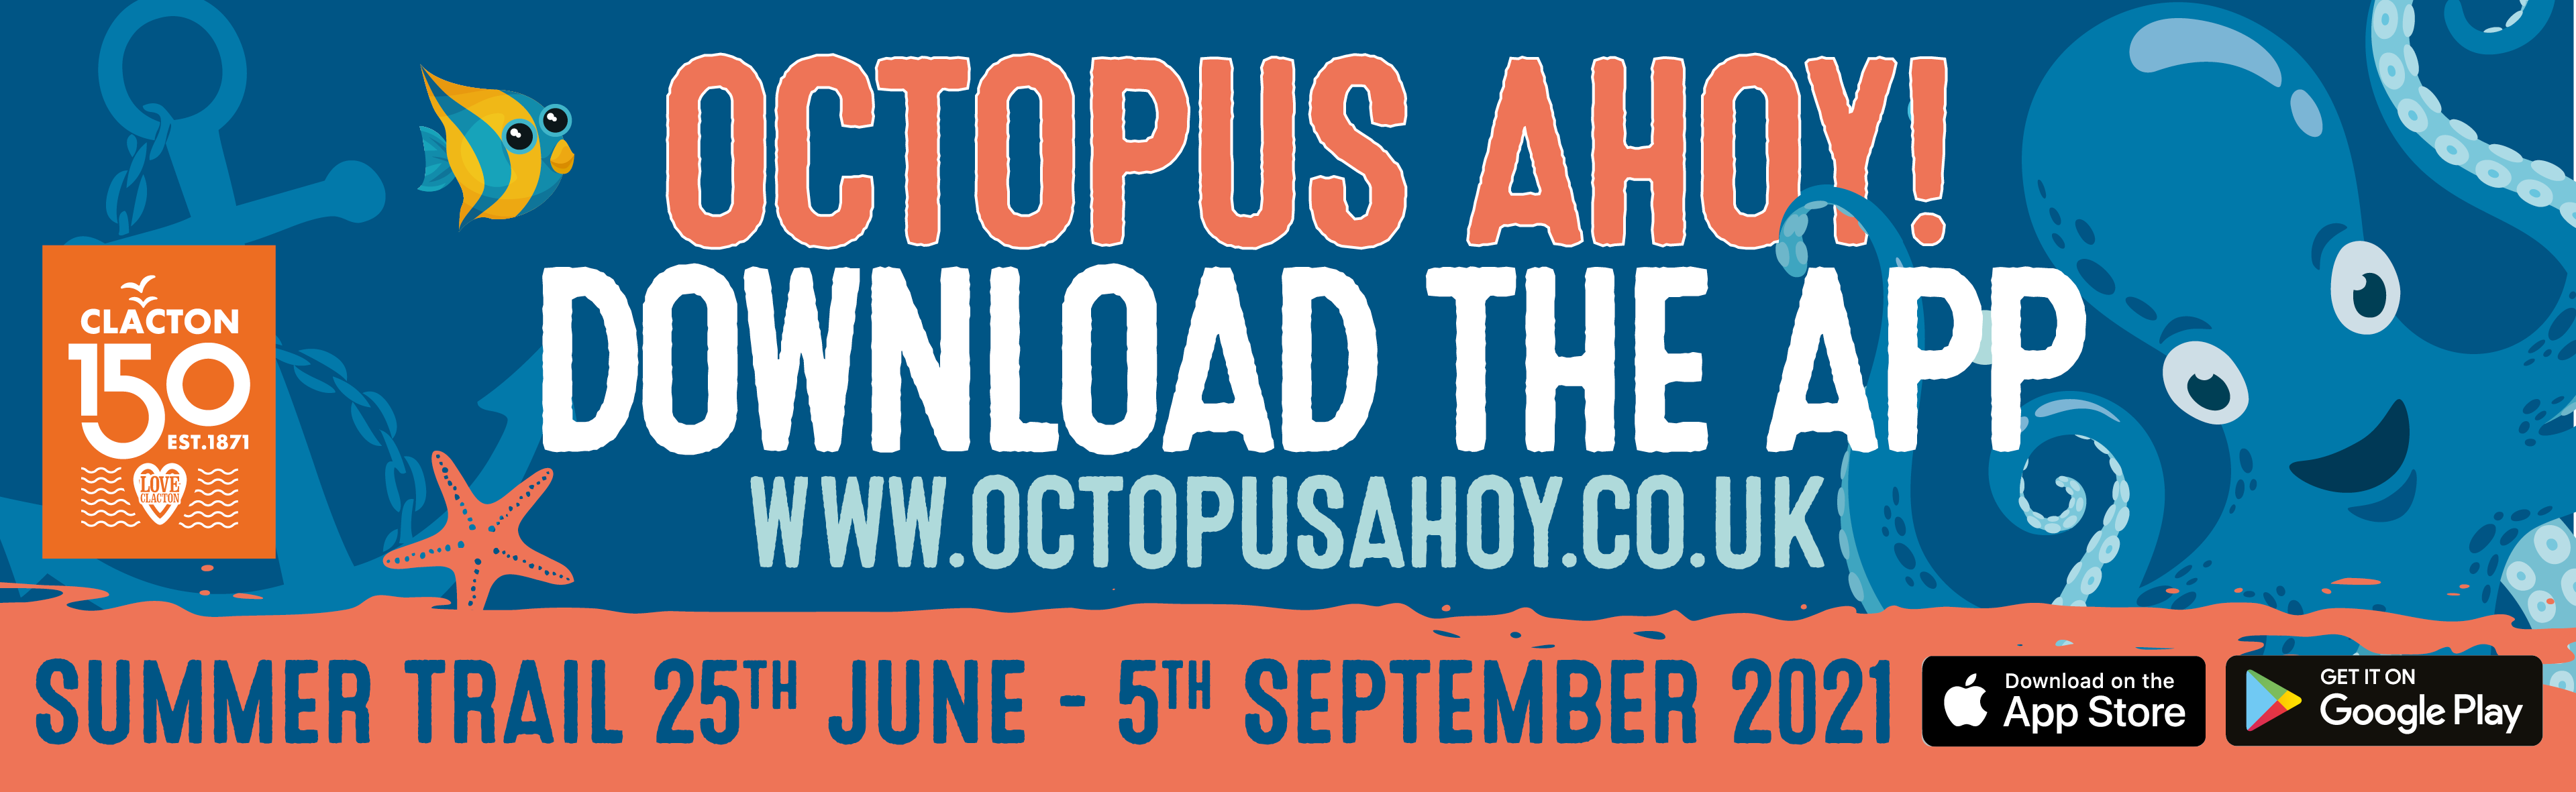 Image showing the Octopus Ahoy Trail